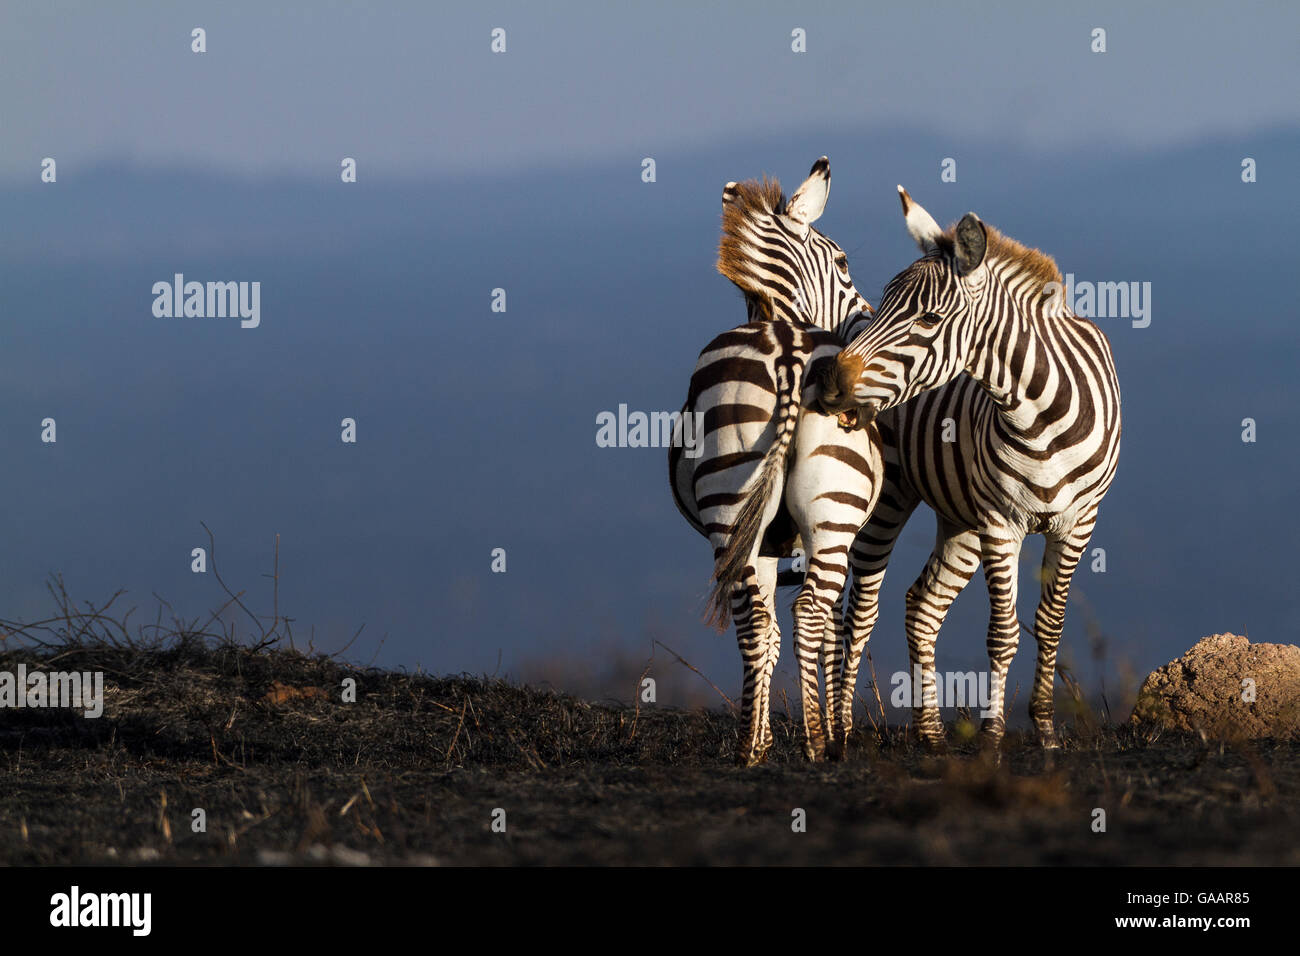 Grant's zebra (Equus burchelli granti) mutual grooming after a bush fire, Masai-Mara Game Reserve, Kenya. October. - Stock Image